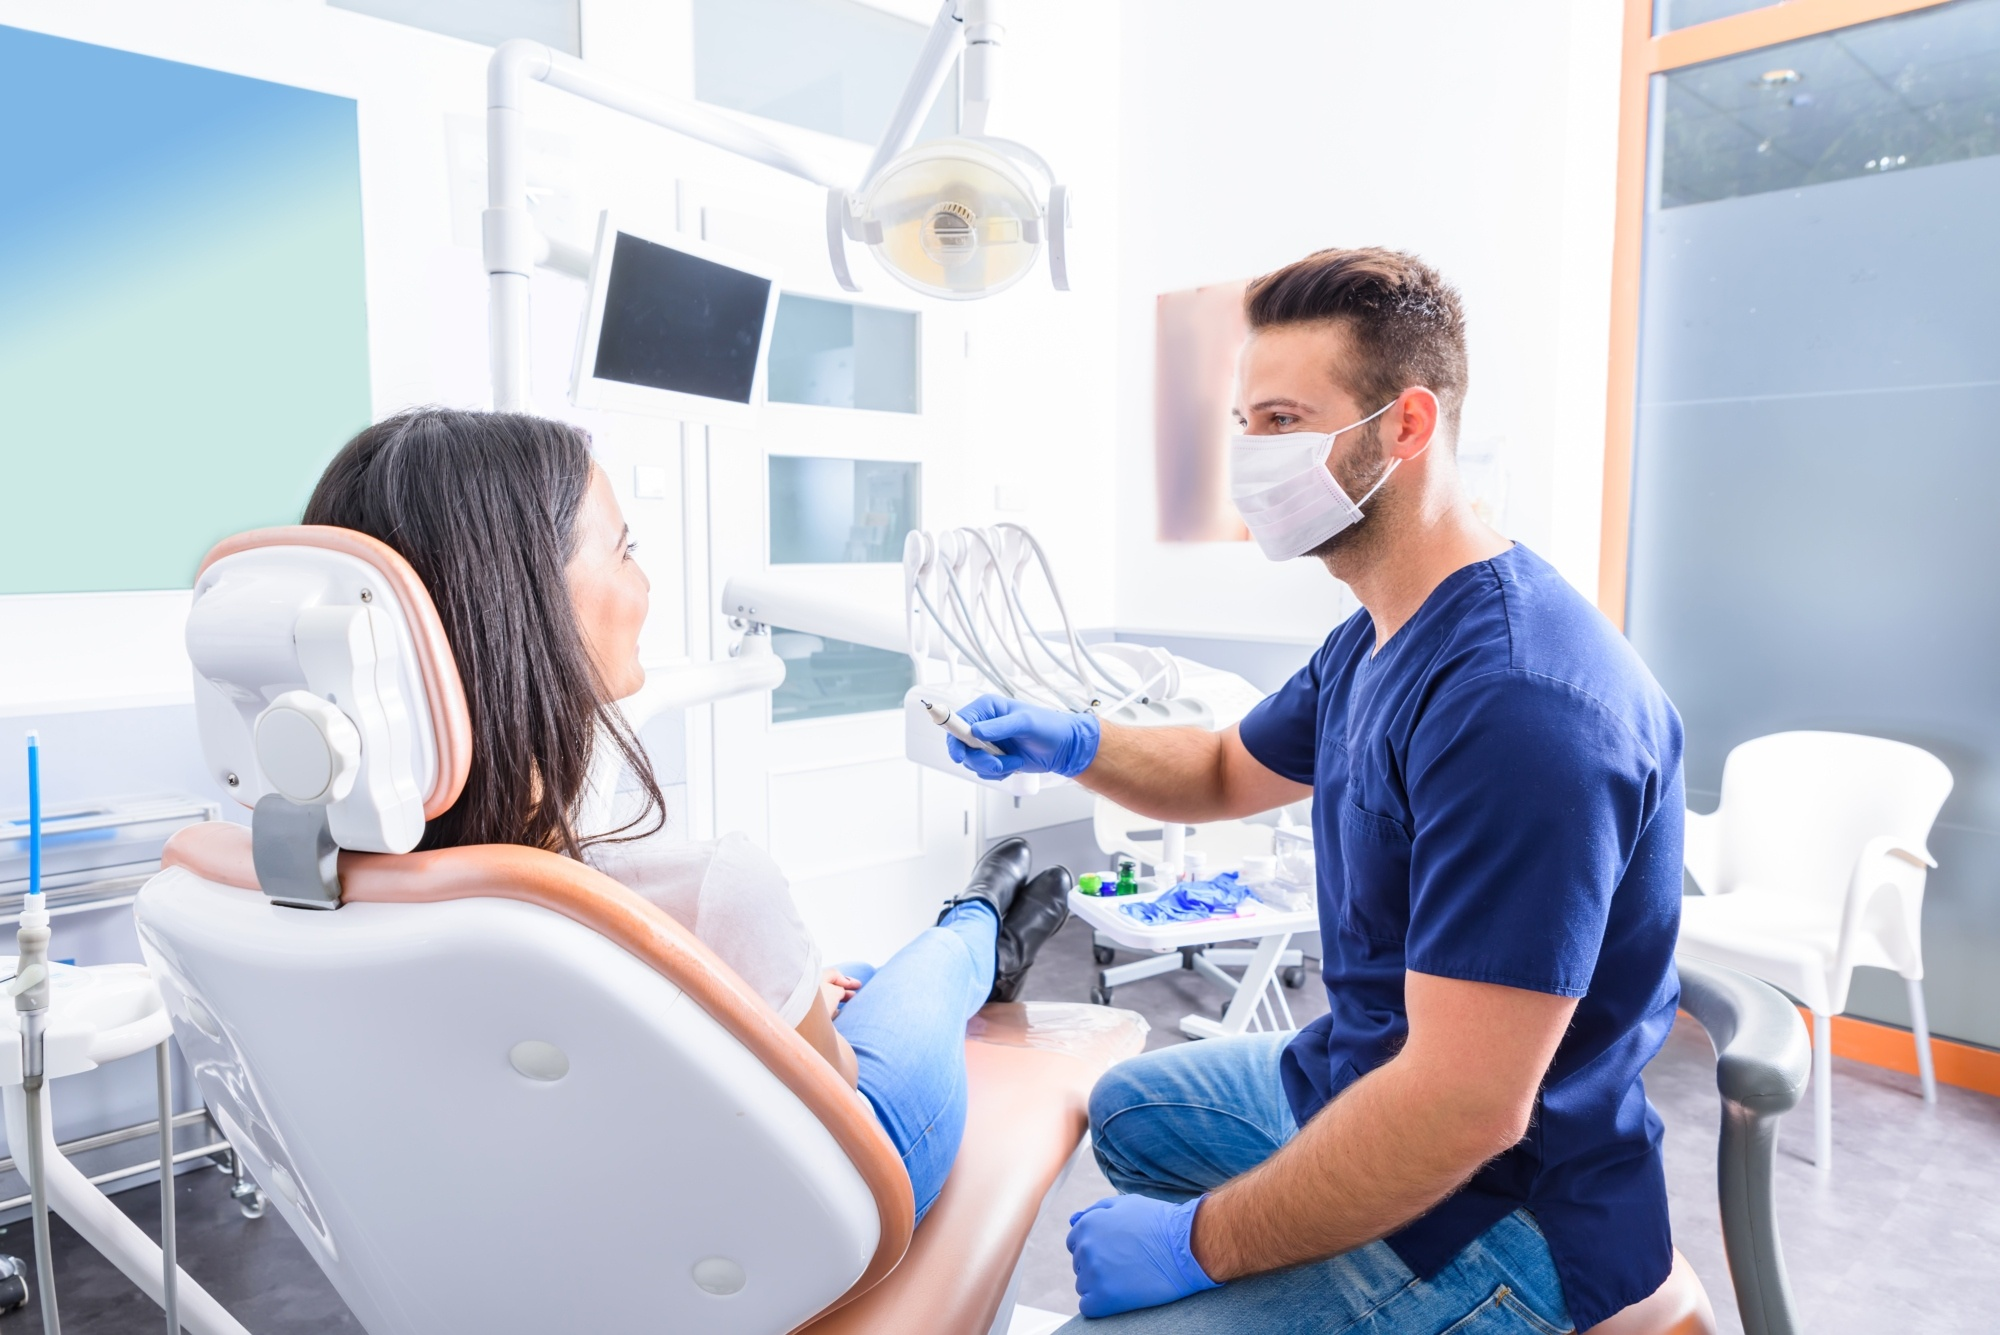 How to collect disability benefits as an endodontist